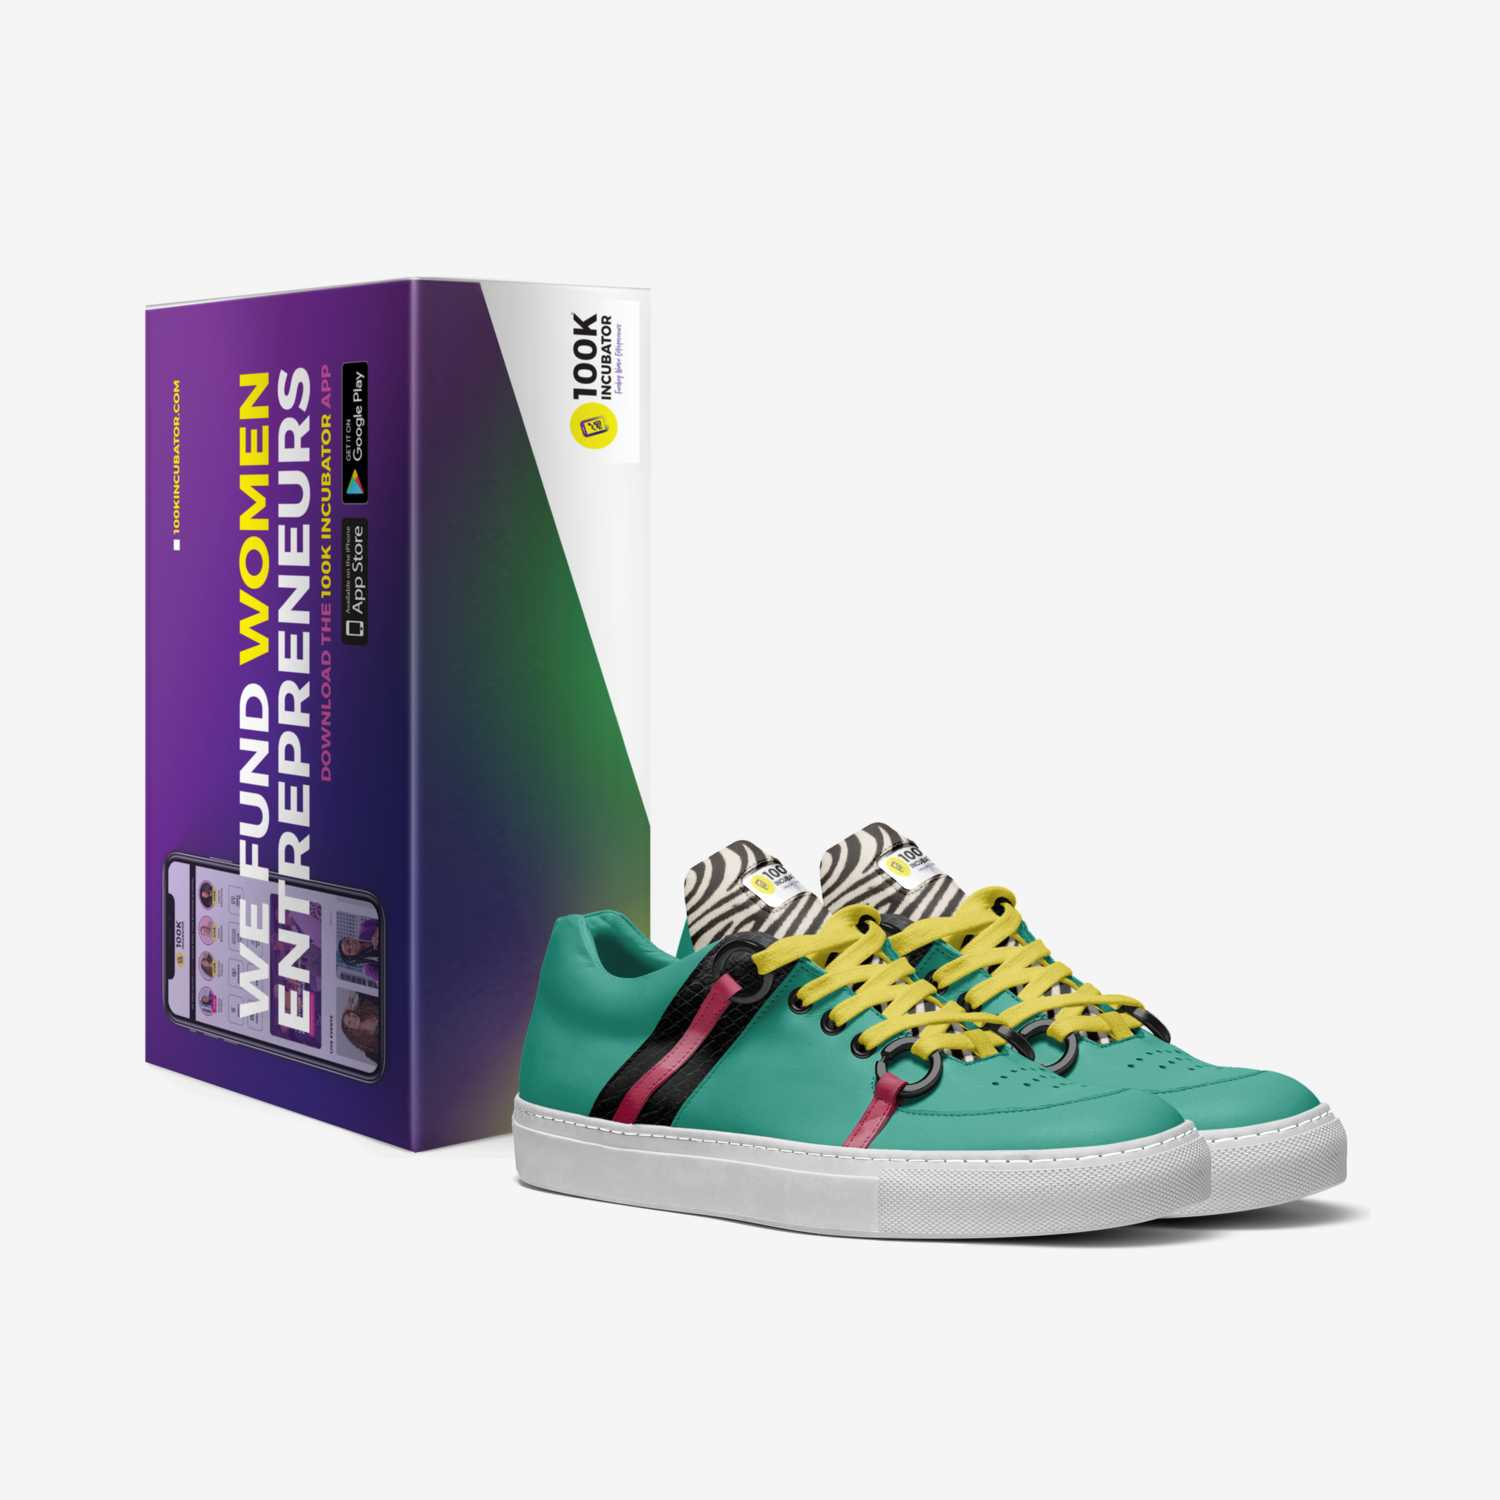 100K Woman custom made in Italy shoes by 100k Incubator | Box view